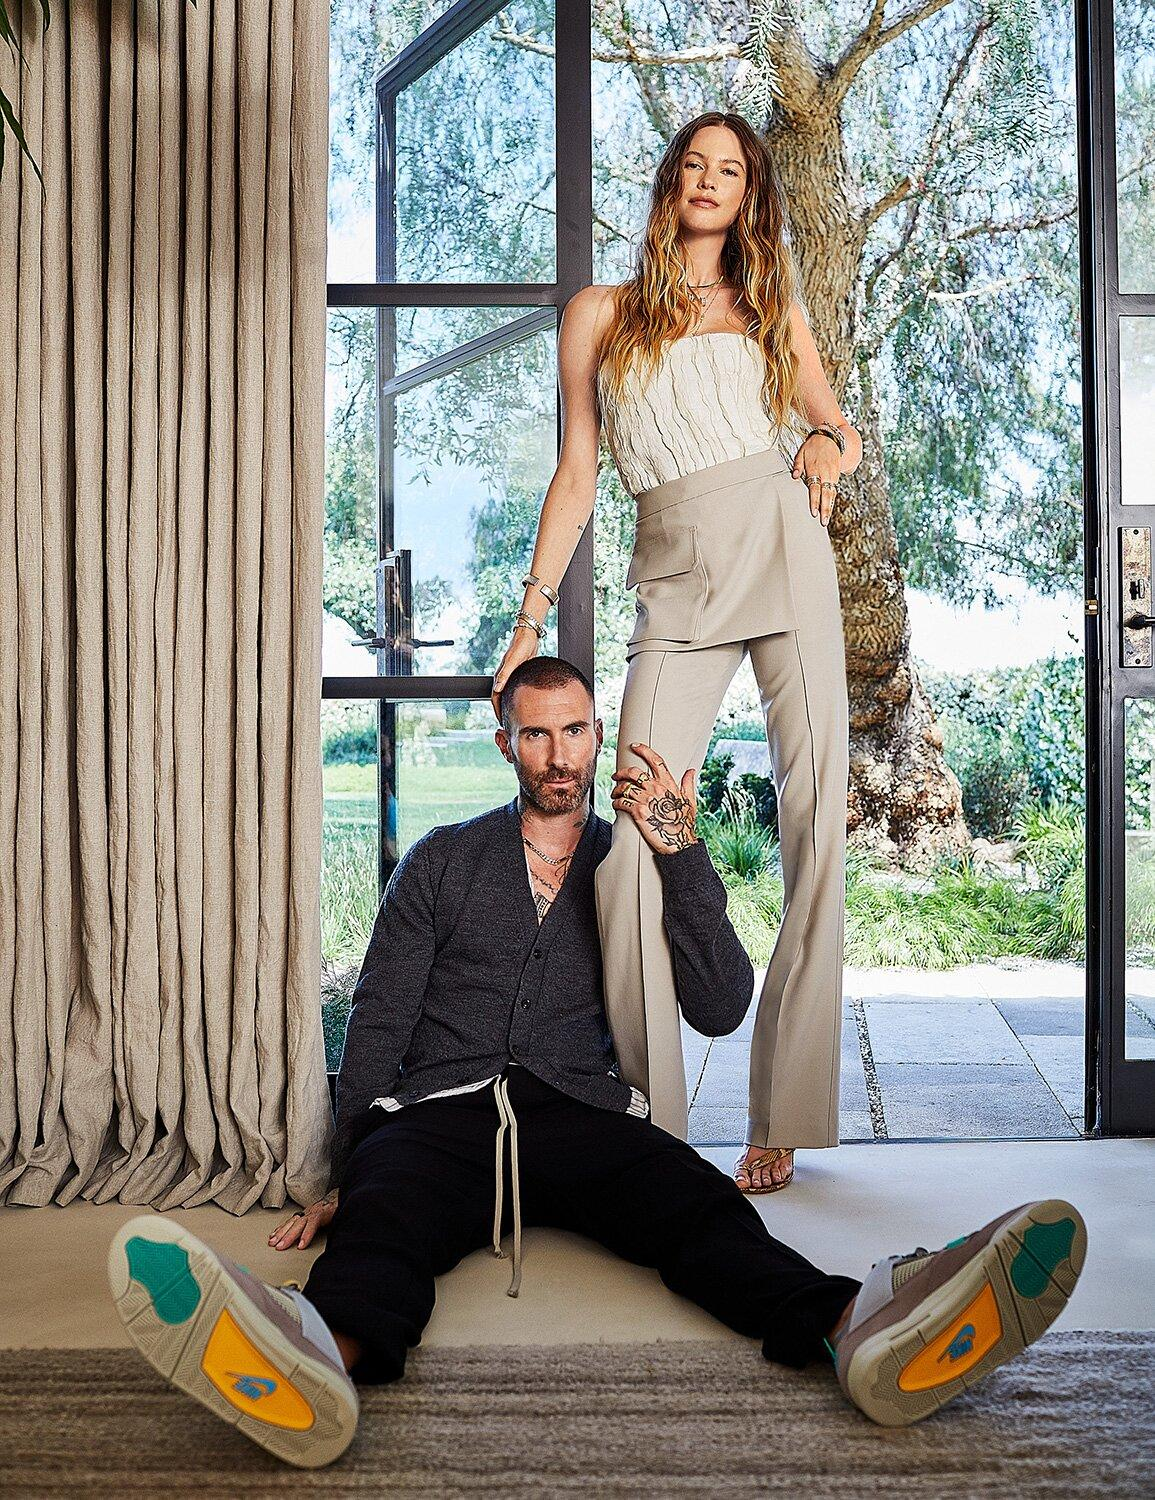 Go Inside Adam Levine and Behati Prinsloo's 'Perfect Sanctuary' Home: 'We Didn't Want a Palatial McMansion'